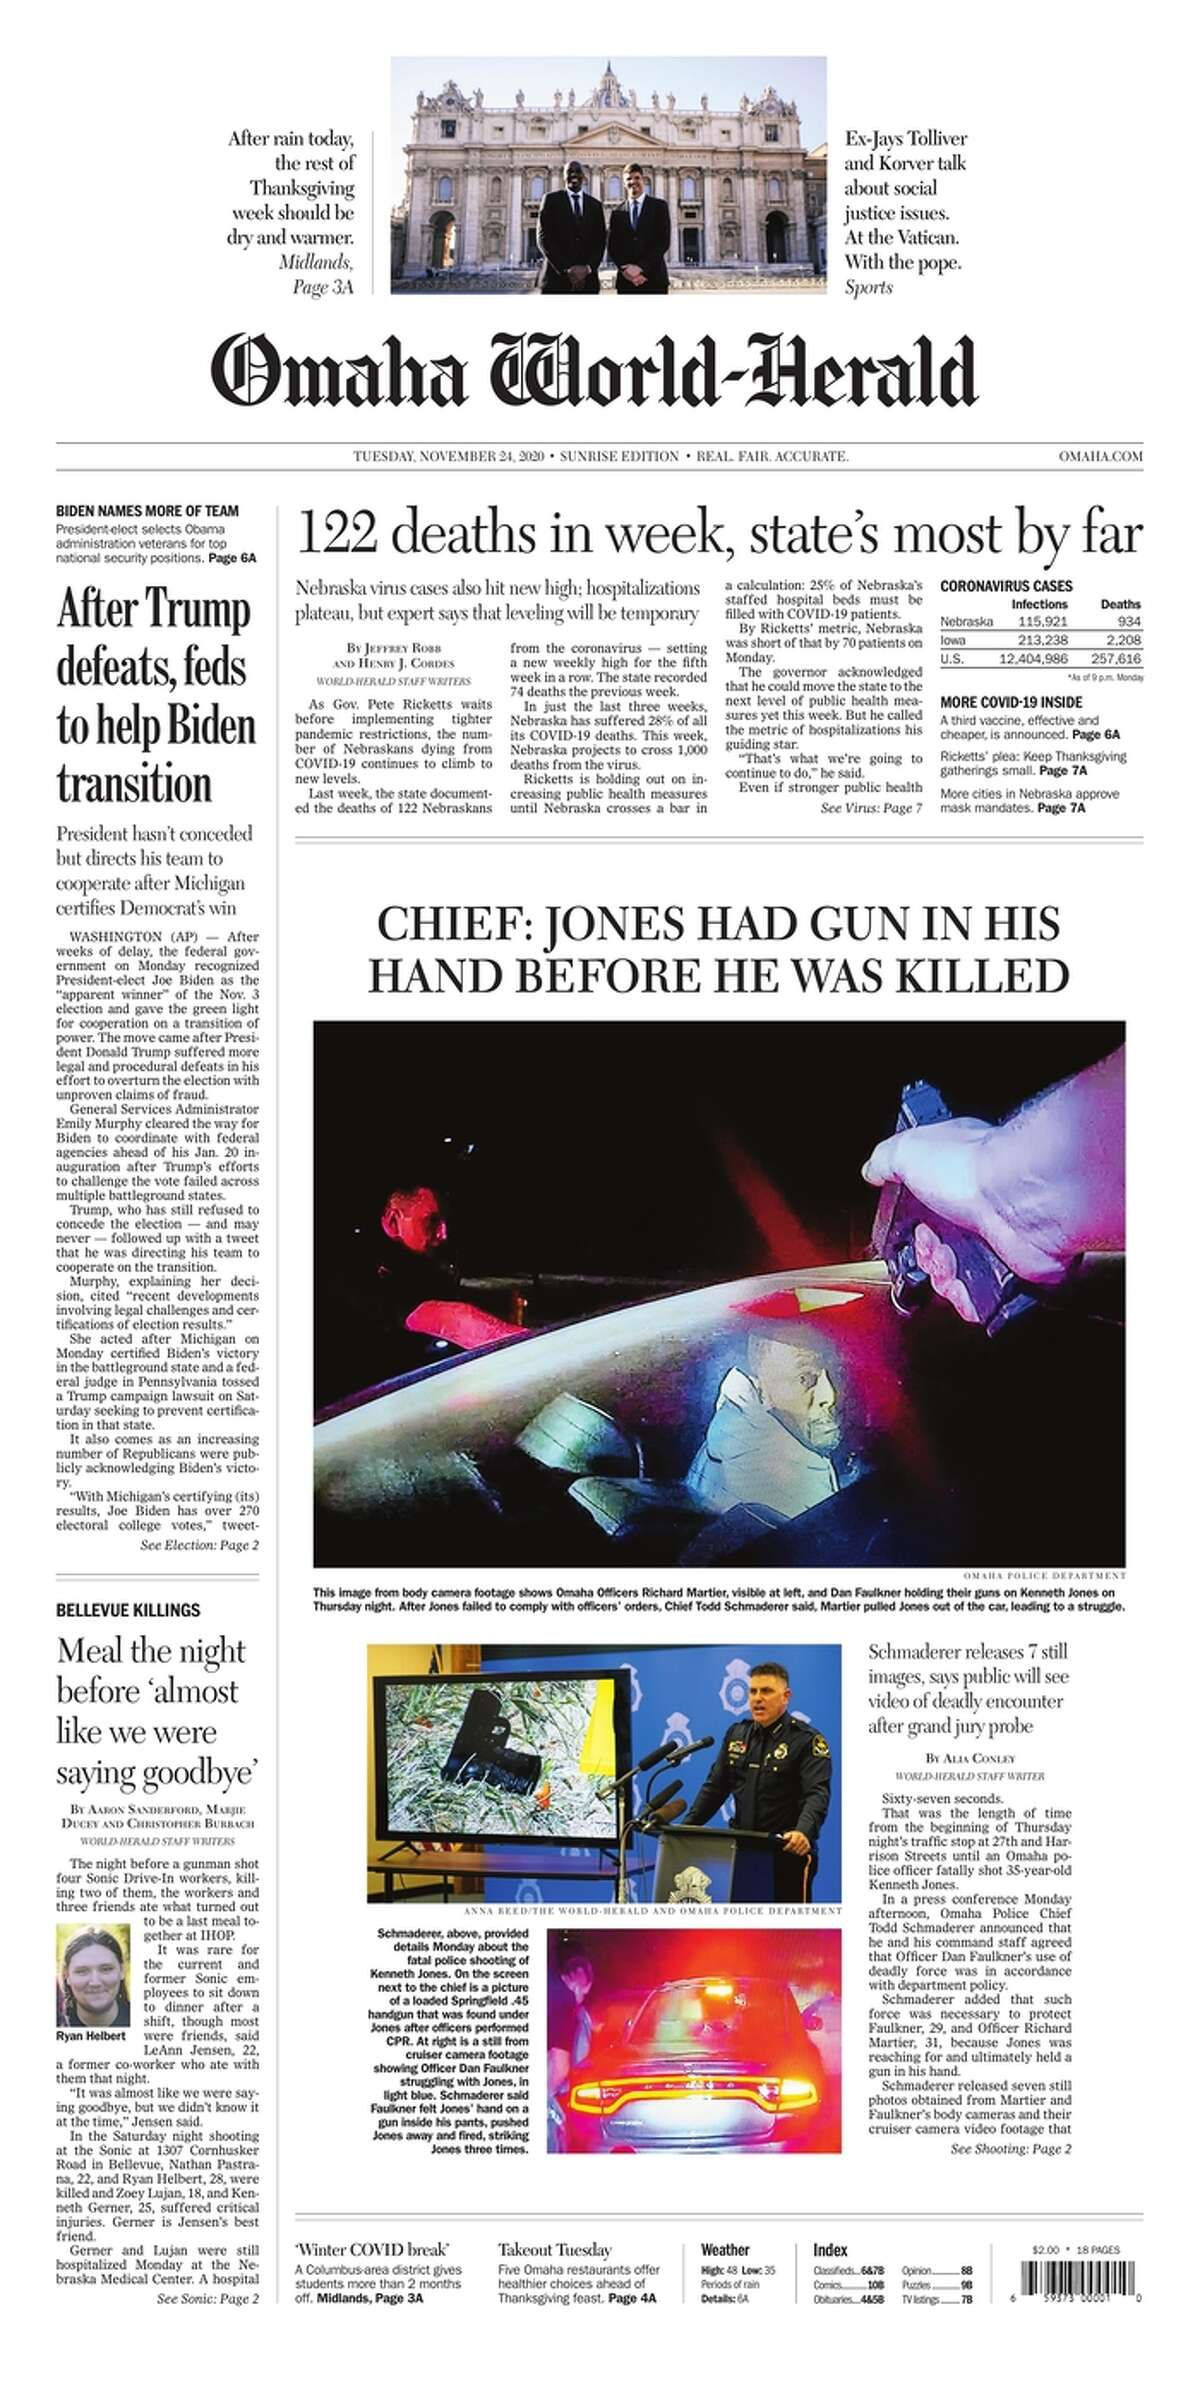 The front page of the Omaha World-Herald a daily newspaper published in Nebraska, on Nov. 24, 2020.